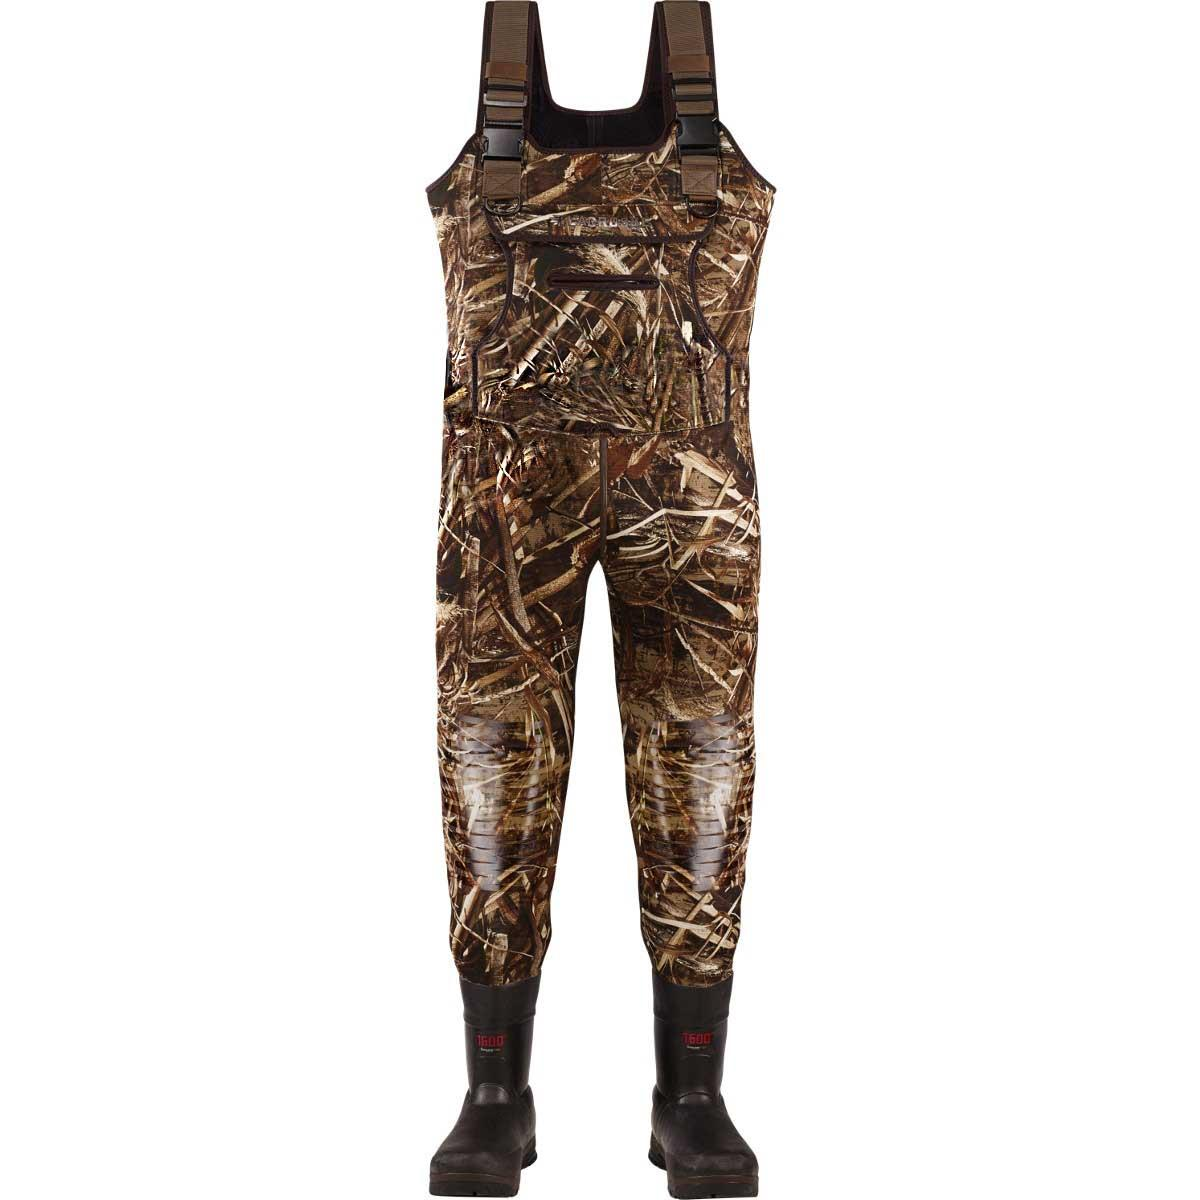 Lacrosse Swamp Tuff Chest Waders, 1600g in Realtree Max 5, Medium Sizes